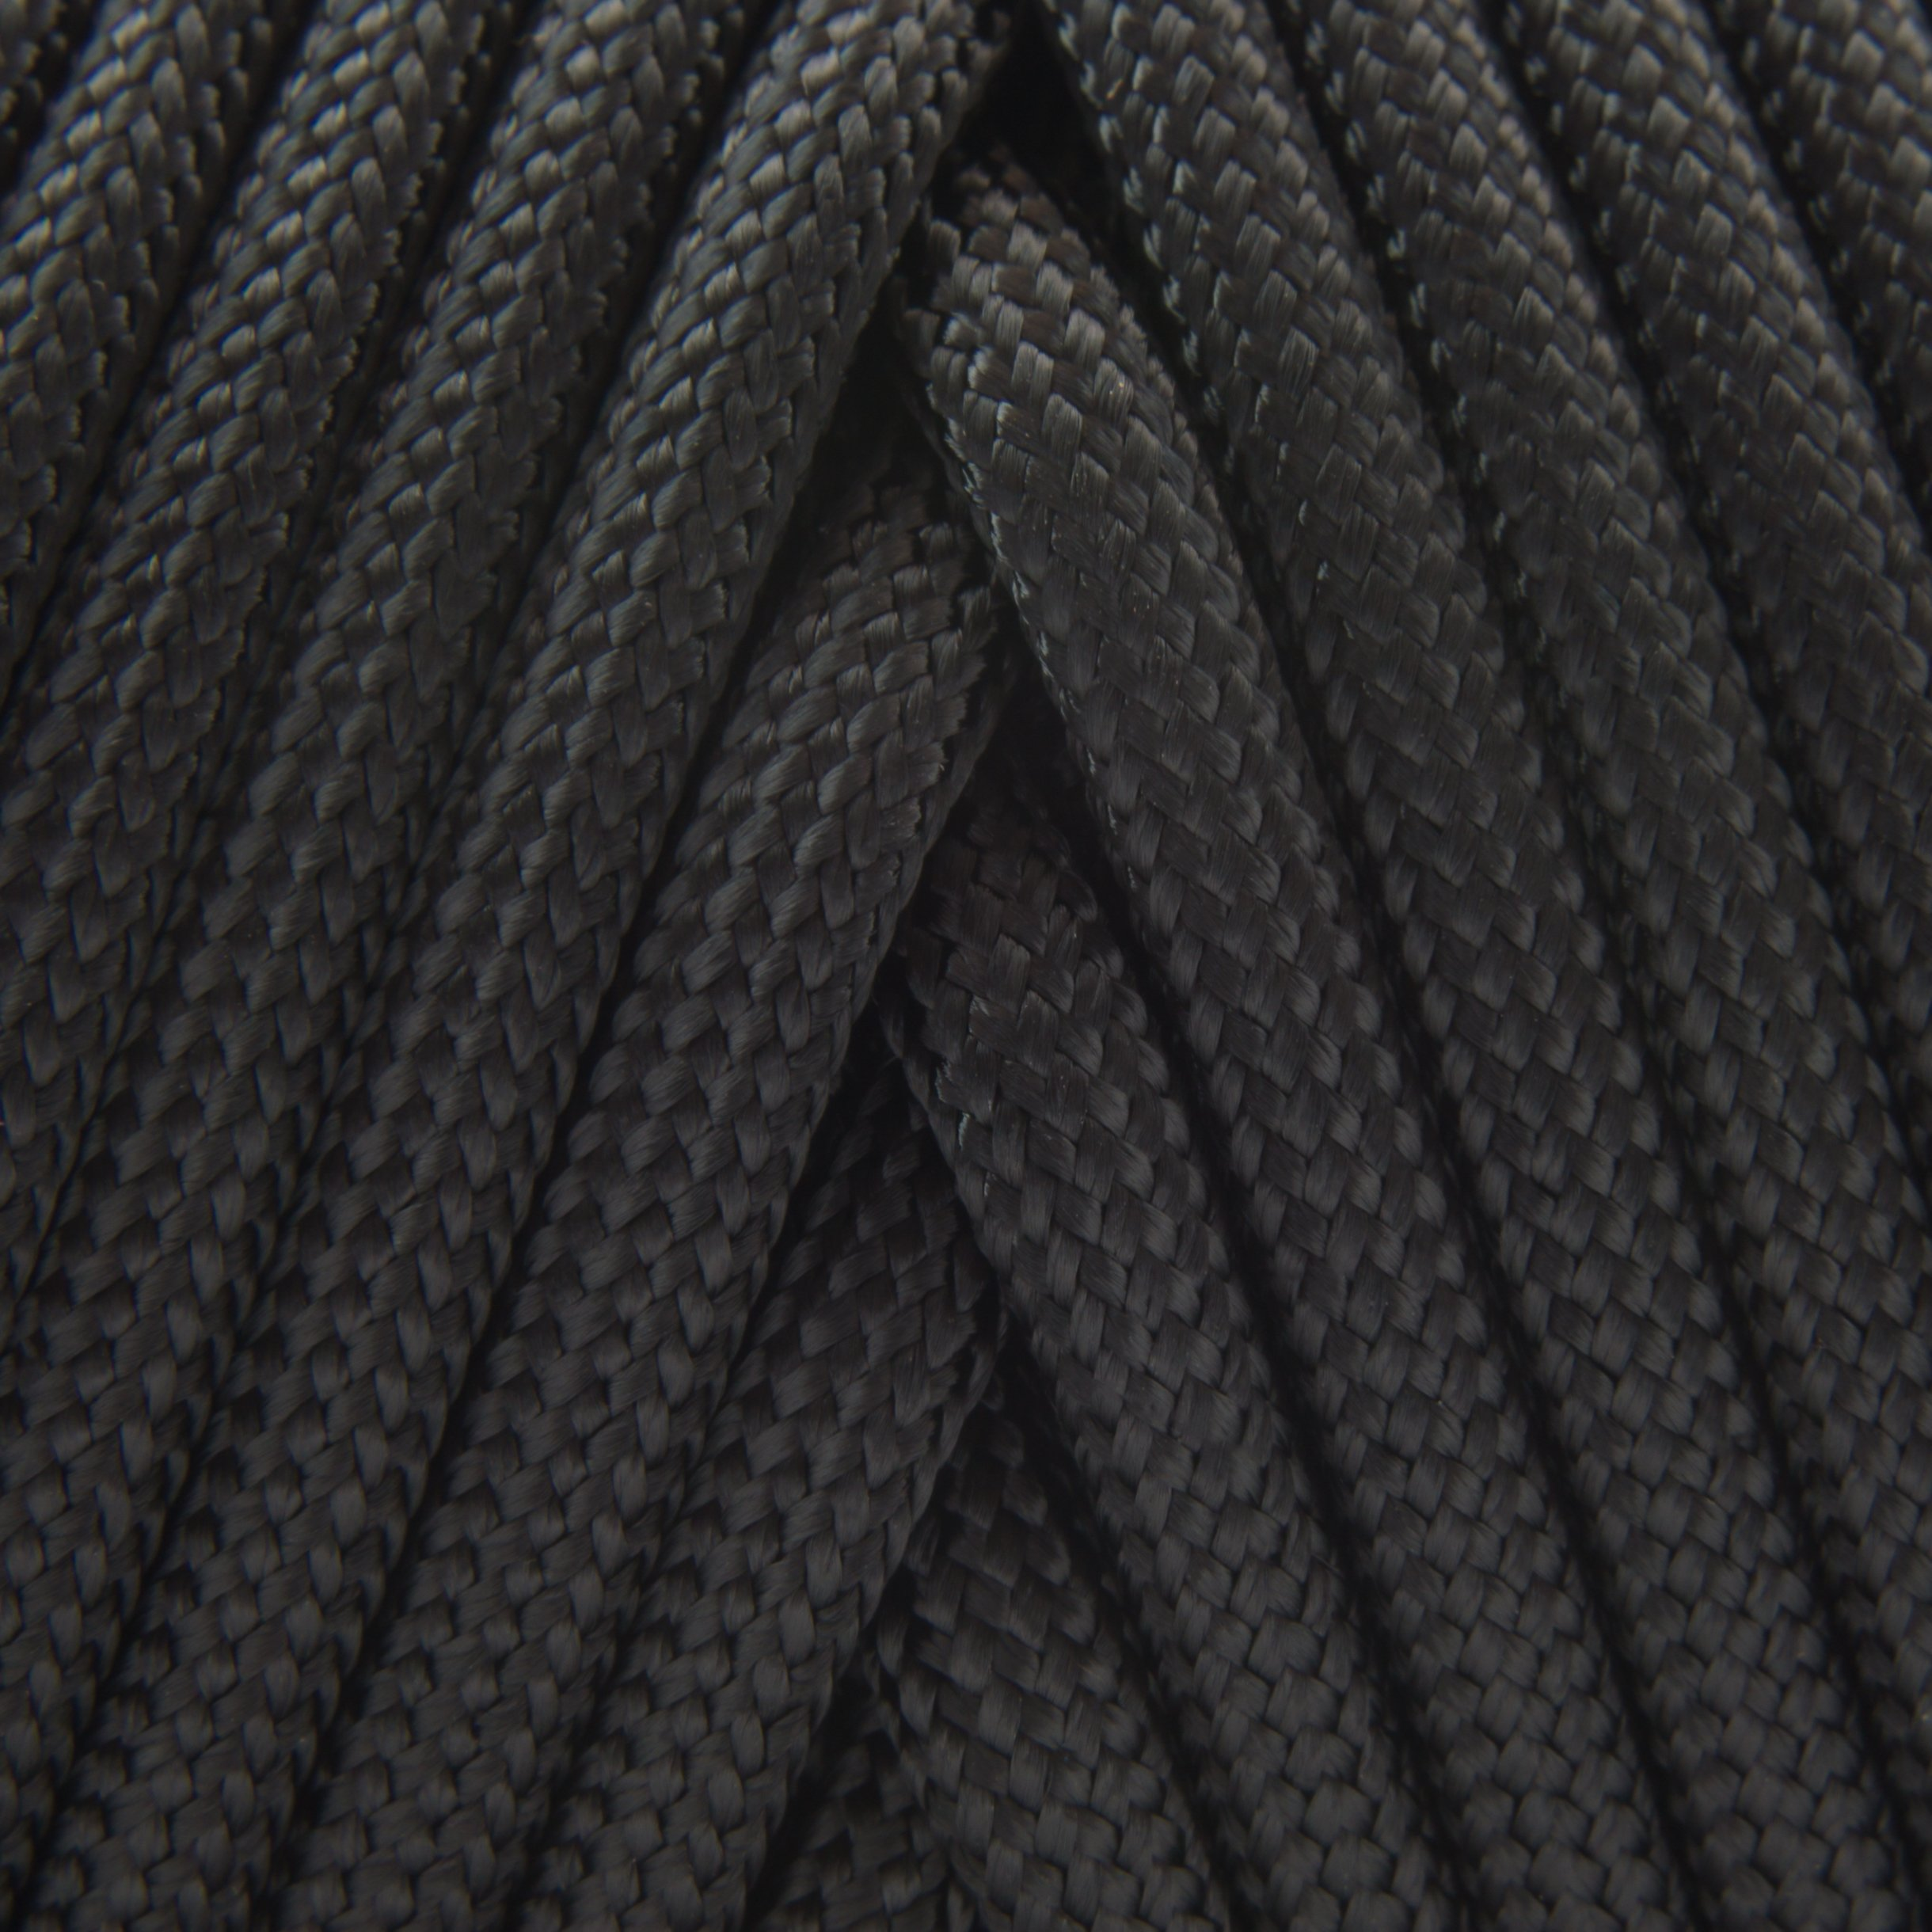 TOUGH-GRID 550lb Black Paracord/Parachute Cord - 100% Nylon Genuine Mil-Spec Type III Paracord Used by The US Military - Great for Bracelets and Lanyards - Made in The USA. 50Ft. - Black by TOUGH-GRID (Image #3)